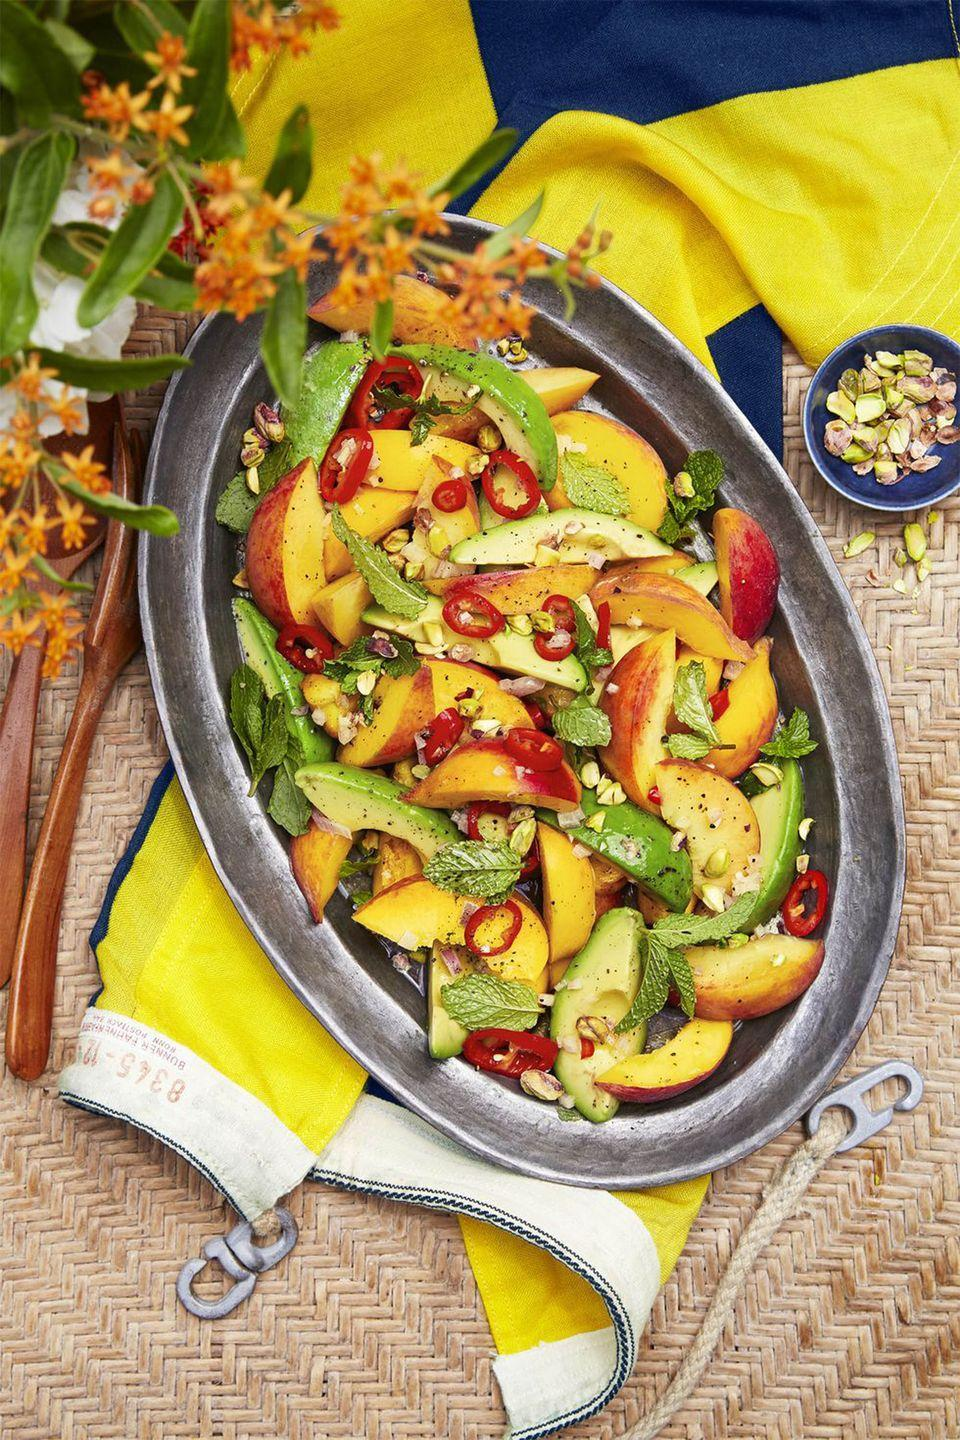 """<p>Fresno chiles add a kick to creamy avocados and sweet peaches in this colorful salad.</p><p><strong><a href=""""https://www.countryliving.com/food-drinks/recipes/a43551/spicy-peach-avocado-salad-recipe/"""" rel=""""nofollow noopener"""" target=""""_blank"""" data-ylk=""""slk:Get the recipe"""" class=""""link rapid-noclick-resp"""">Get the recipe</a>.</strong> </p>"""